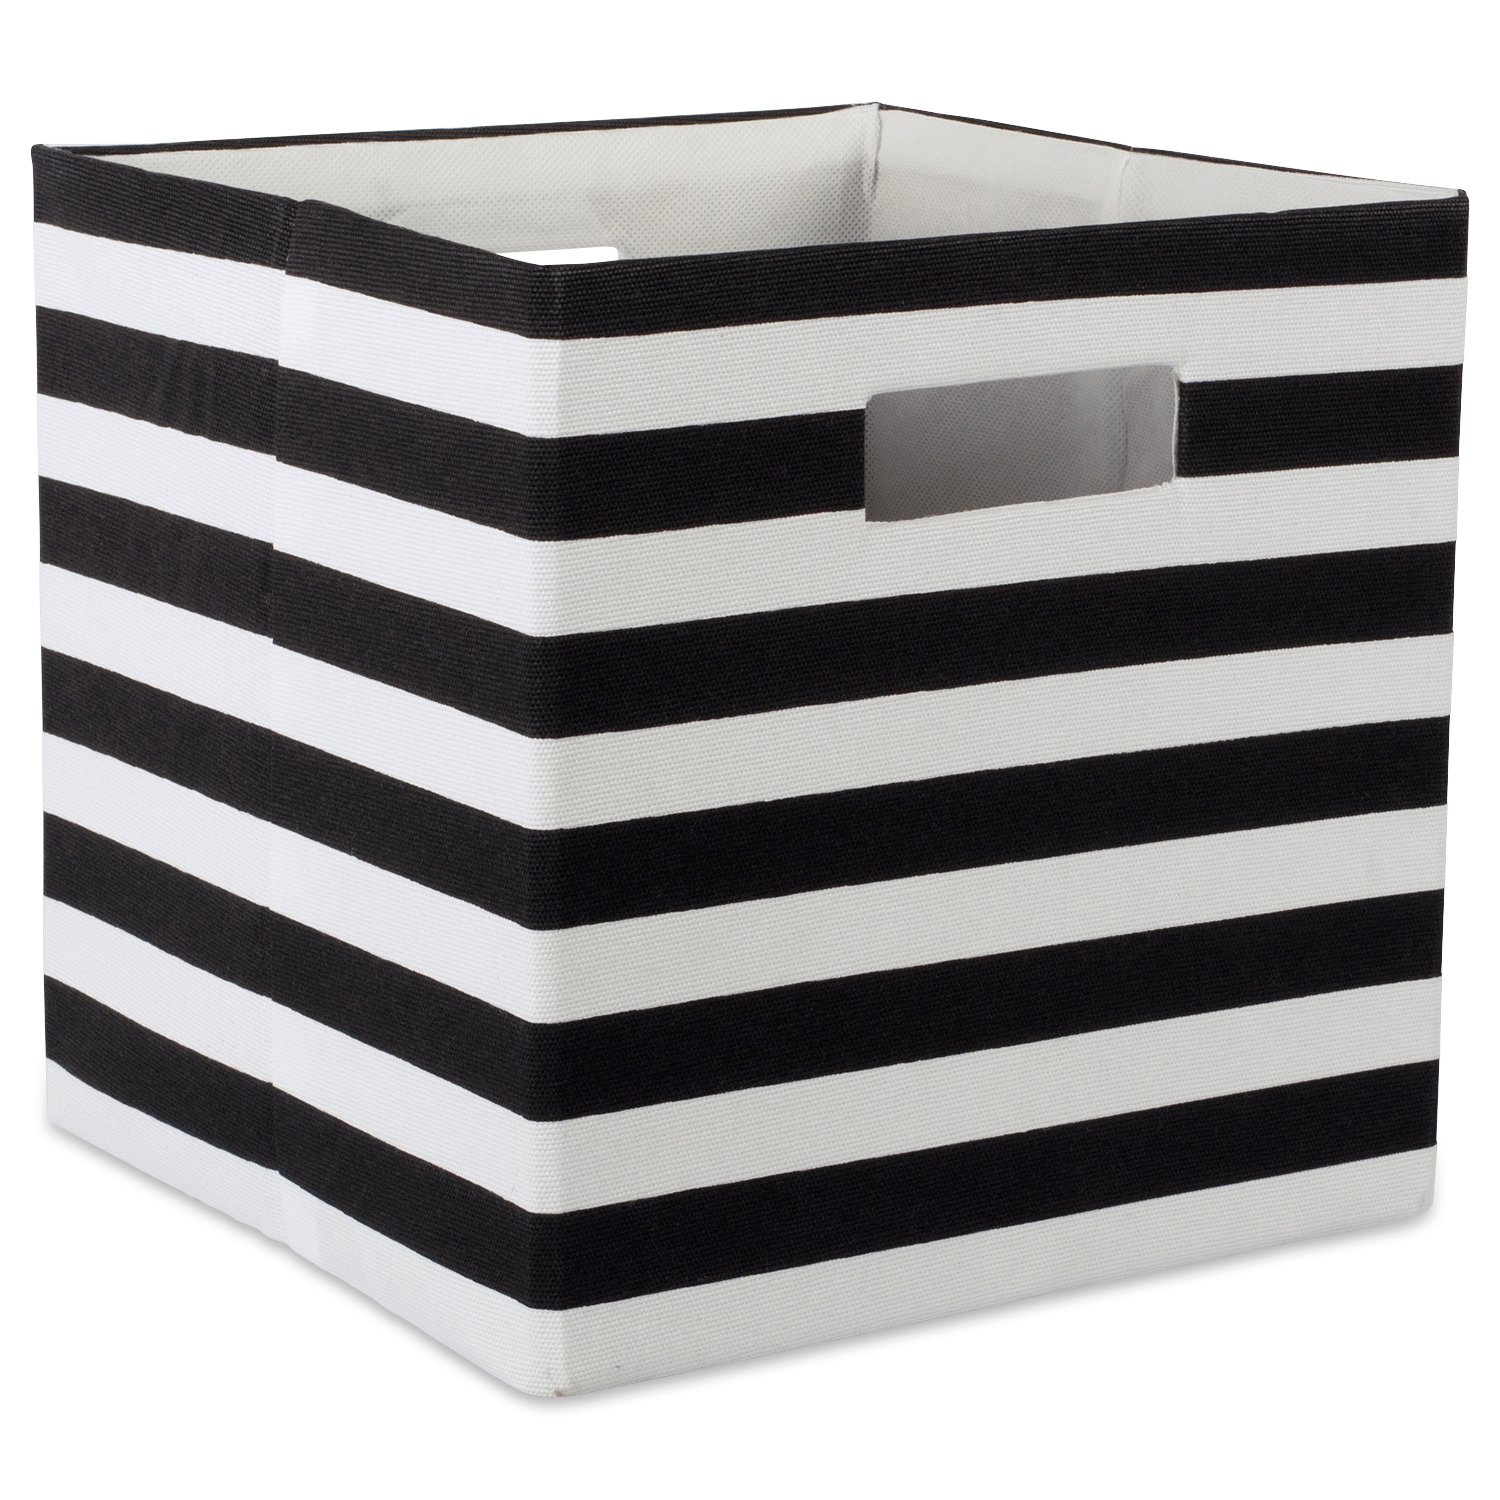 DII Foldable Fabric Storage Container for Nurseries, Offices, Closets, Home Décor, Cube Organizer & Everyday Use,  11 x 11 x 11, Stripe Black, Small